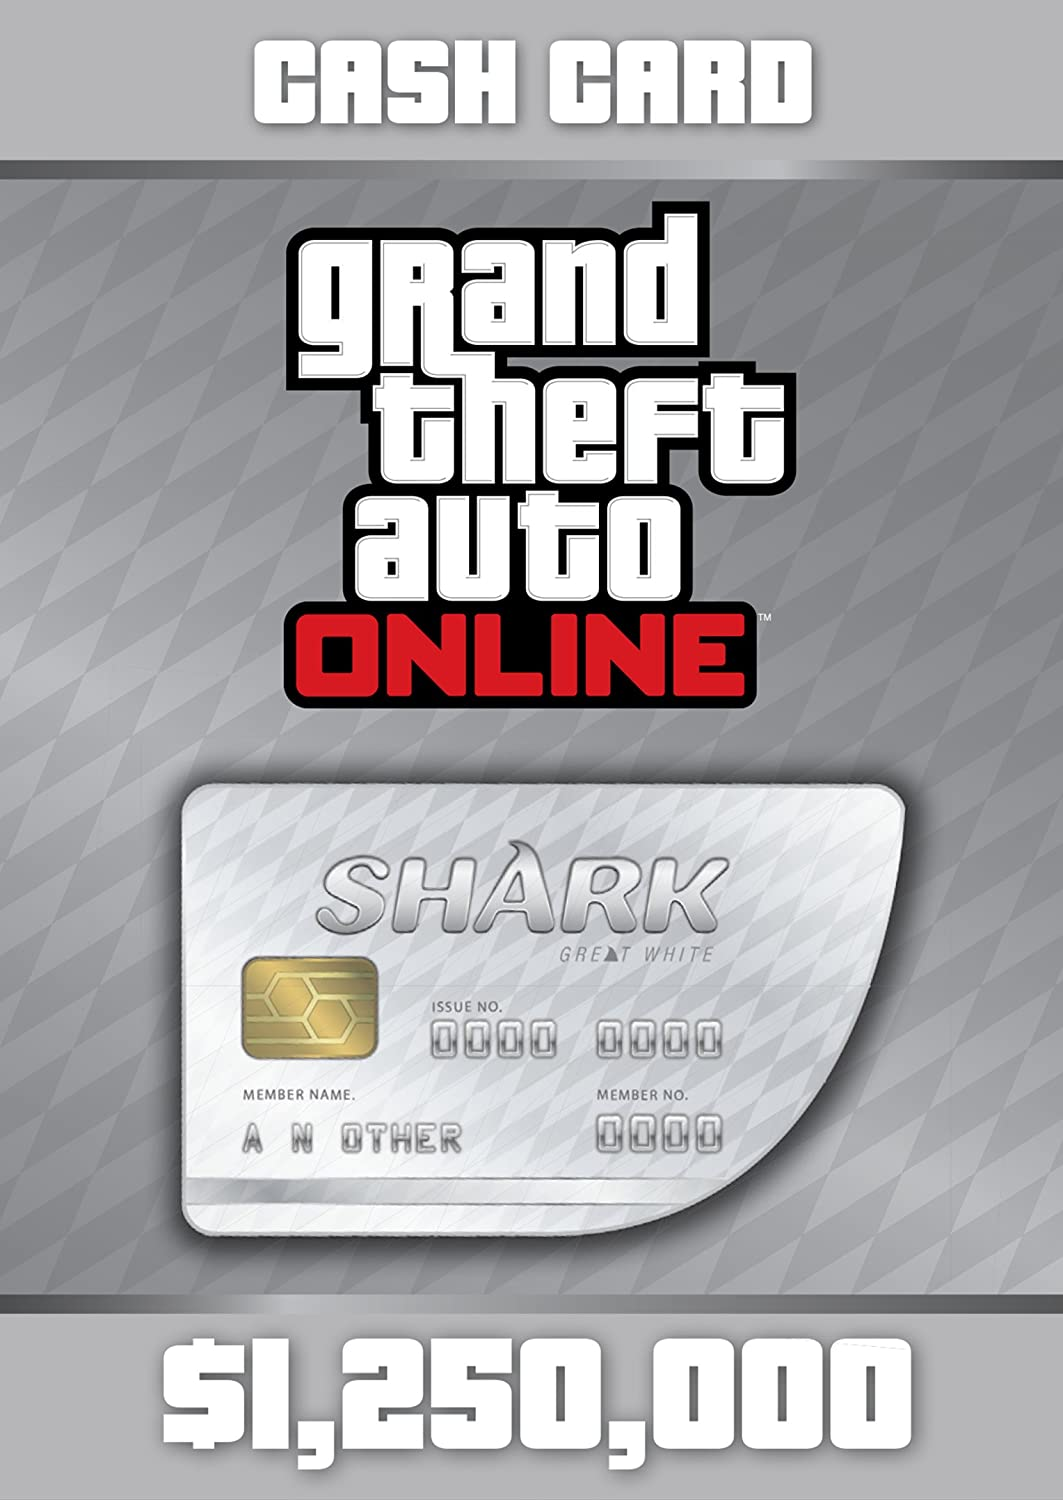 Amazon Com Grand Theft Auto Online Great White Shark Cash Card Ps Digital Code Video Games